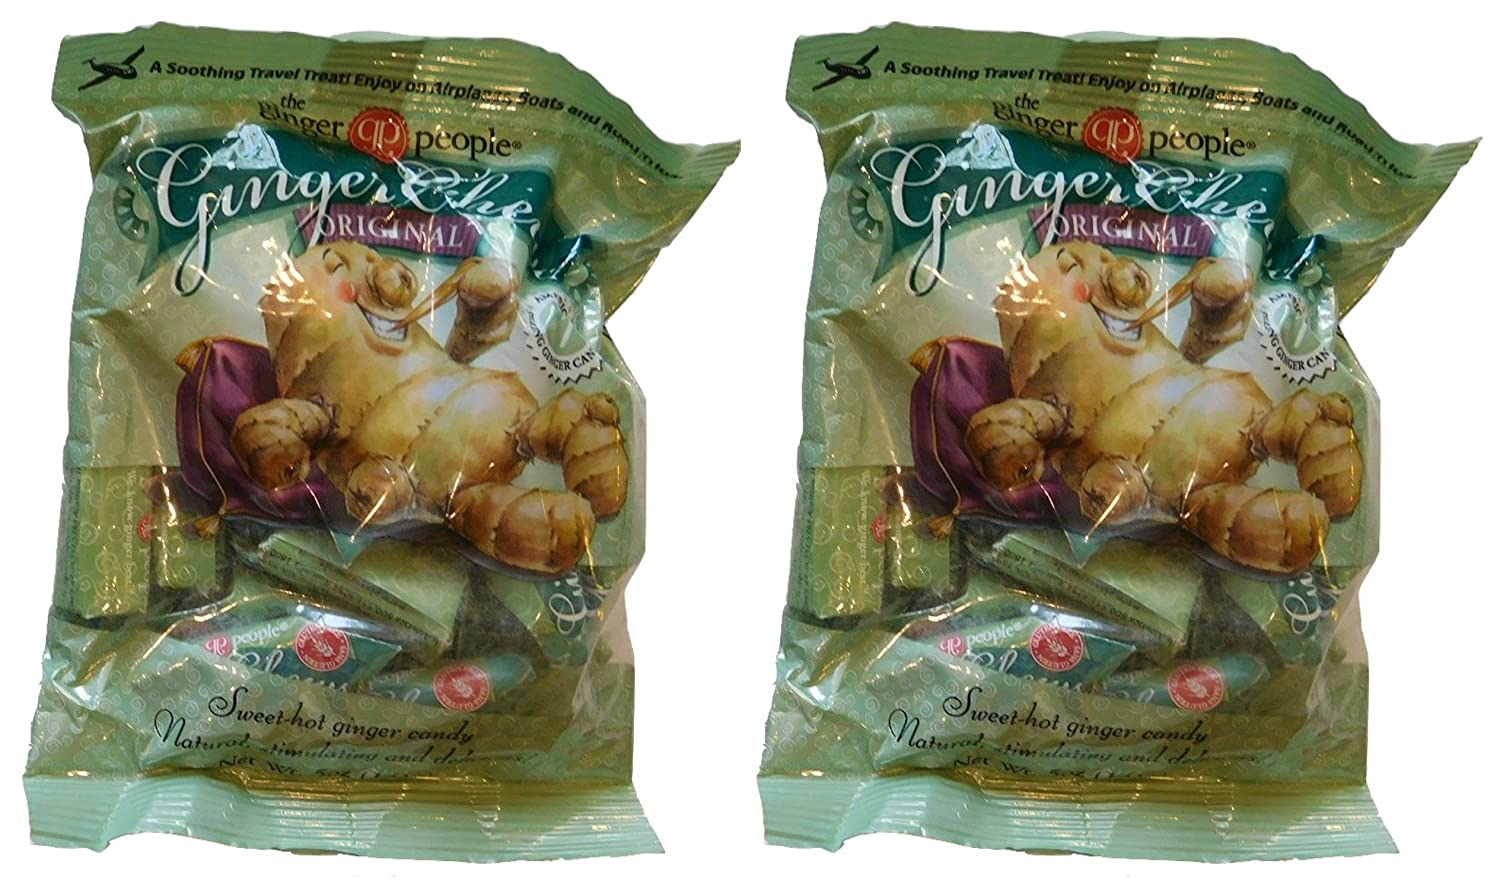 The Ginger People Original Ginger Chews, 5 oz (Pack of 2) Gluten Free